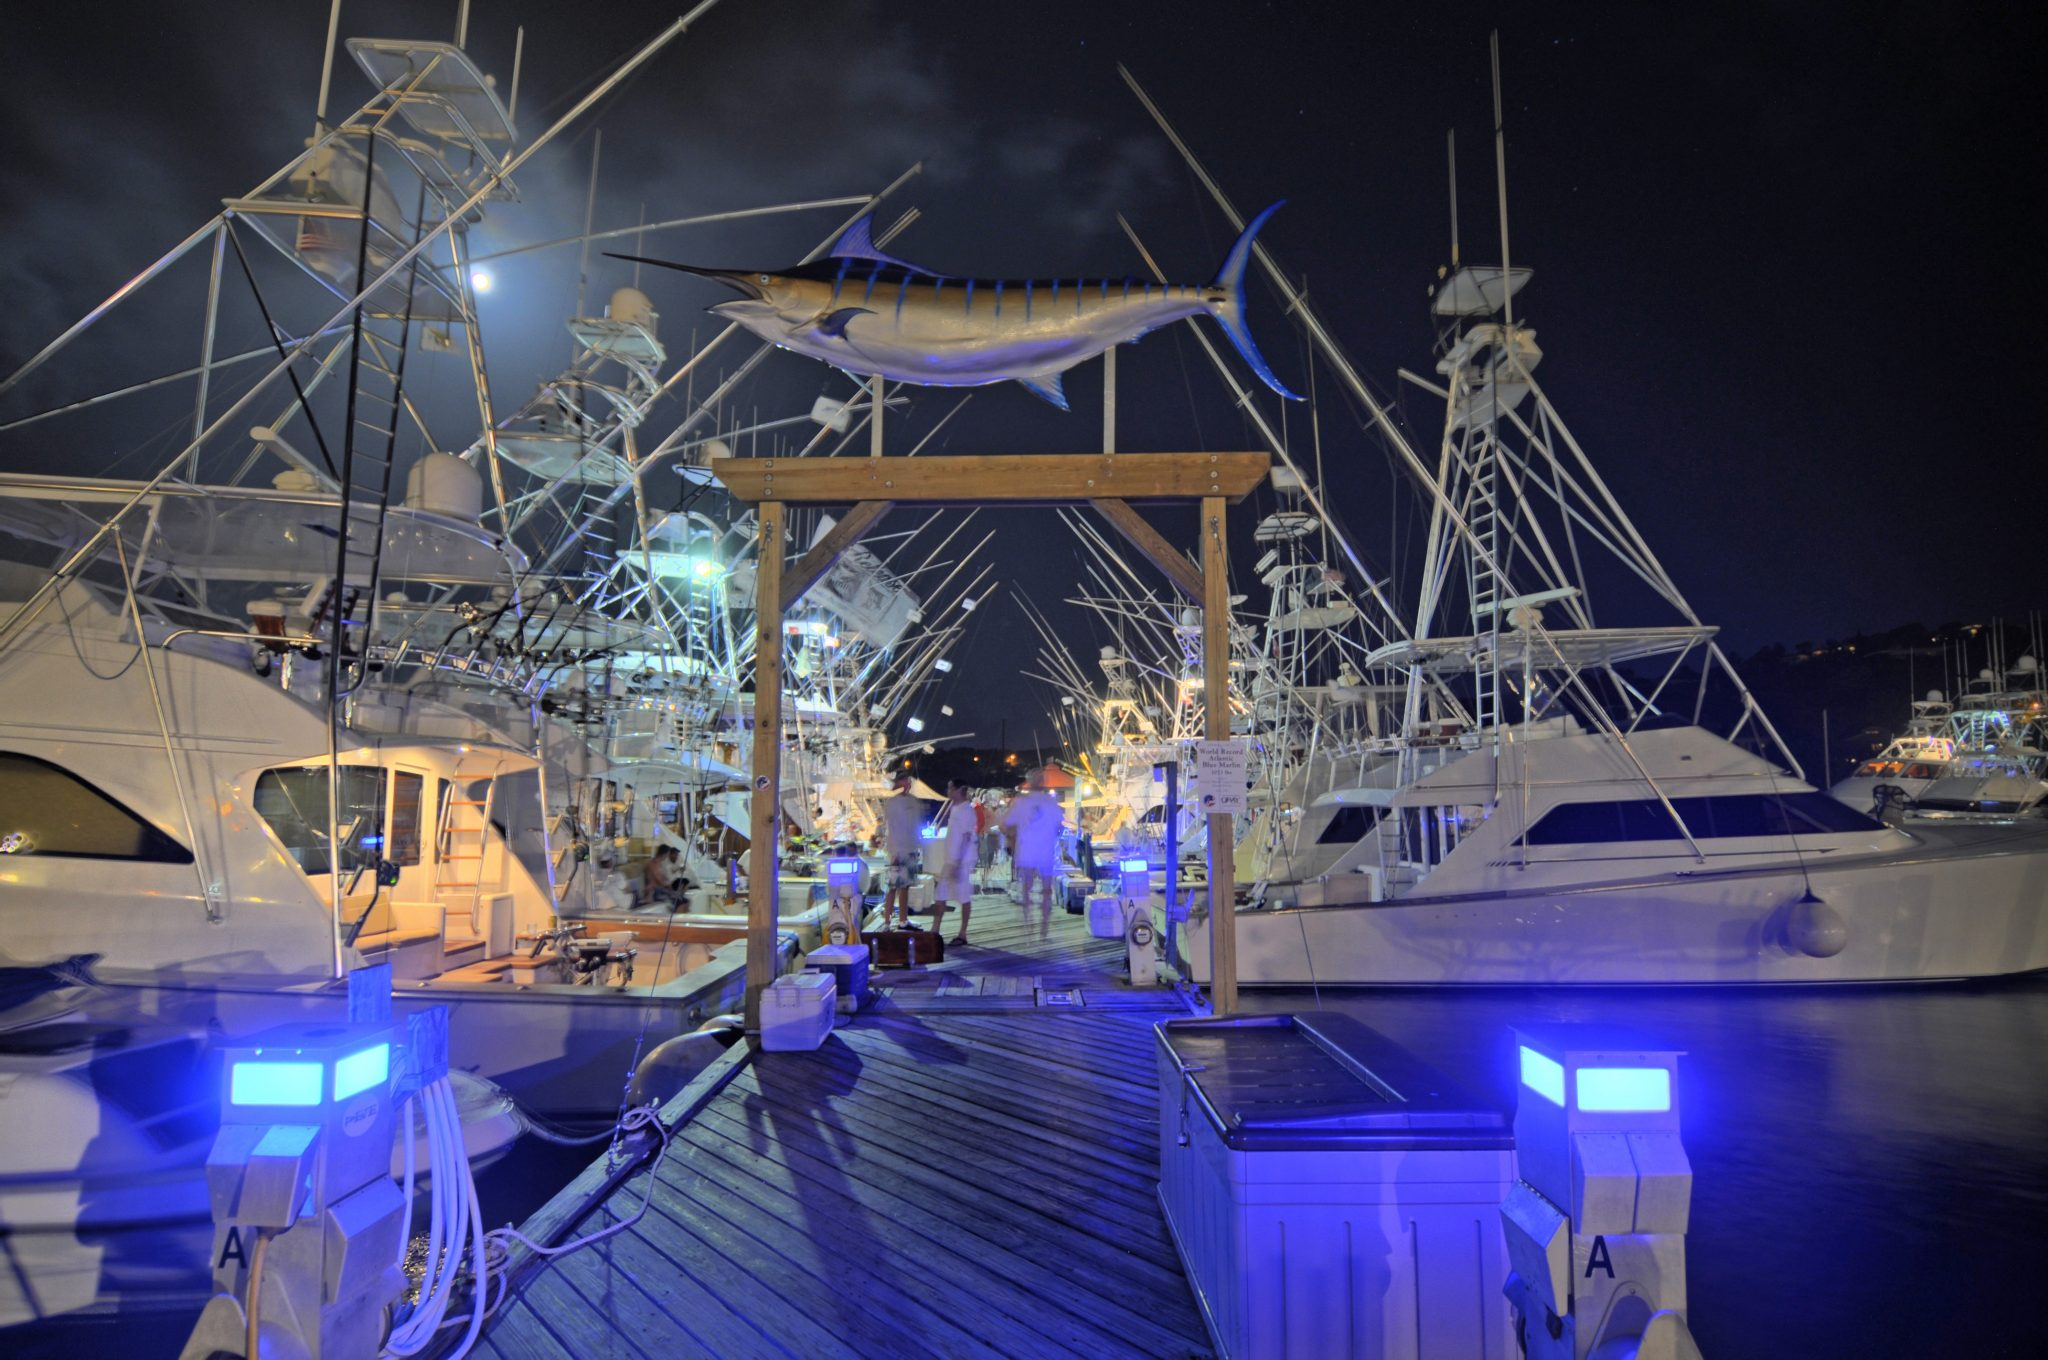 ABMT competitors on A Dock at IGY's AYH Marina in the light of the full moon. Credit: Dean Barnes